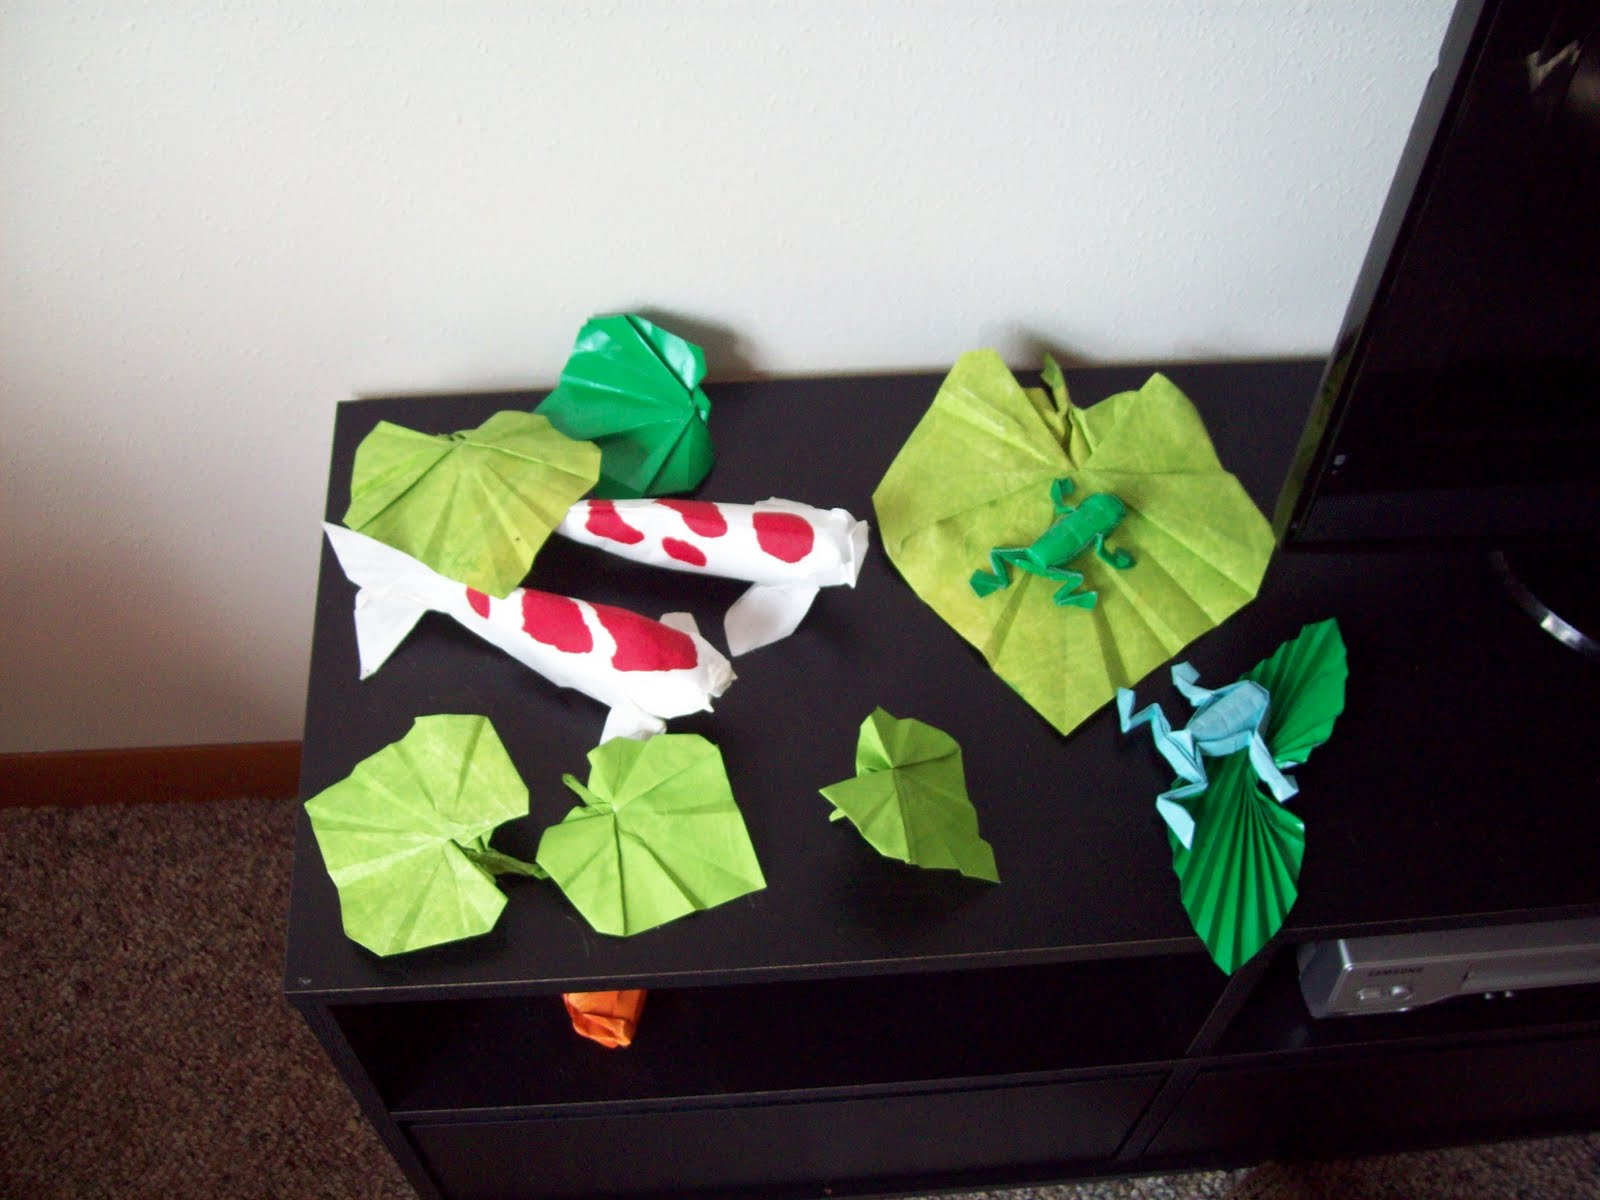 The Midnight Carver: Continuing the Origami Pond - photo#28